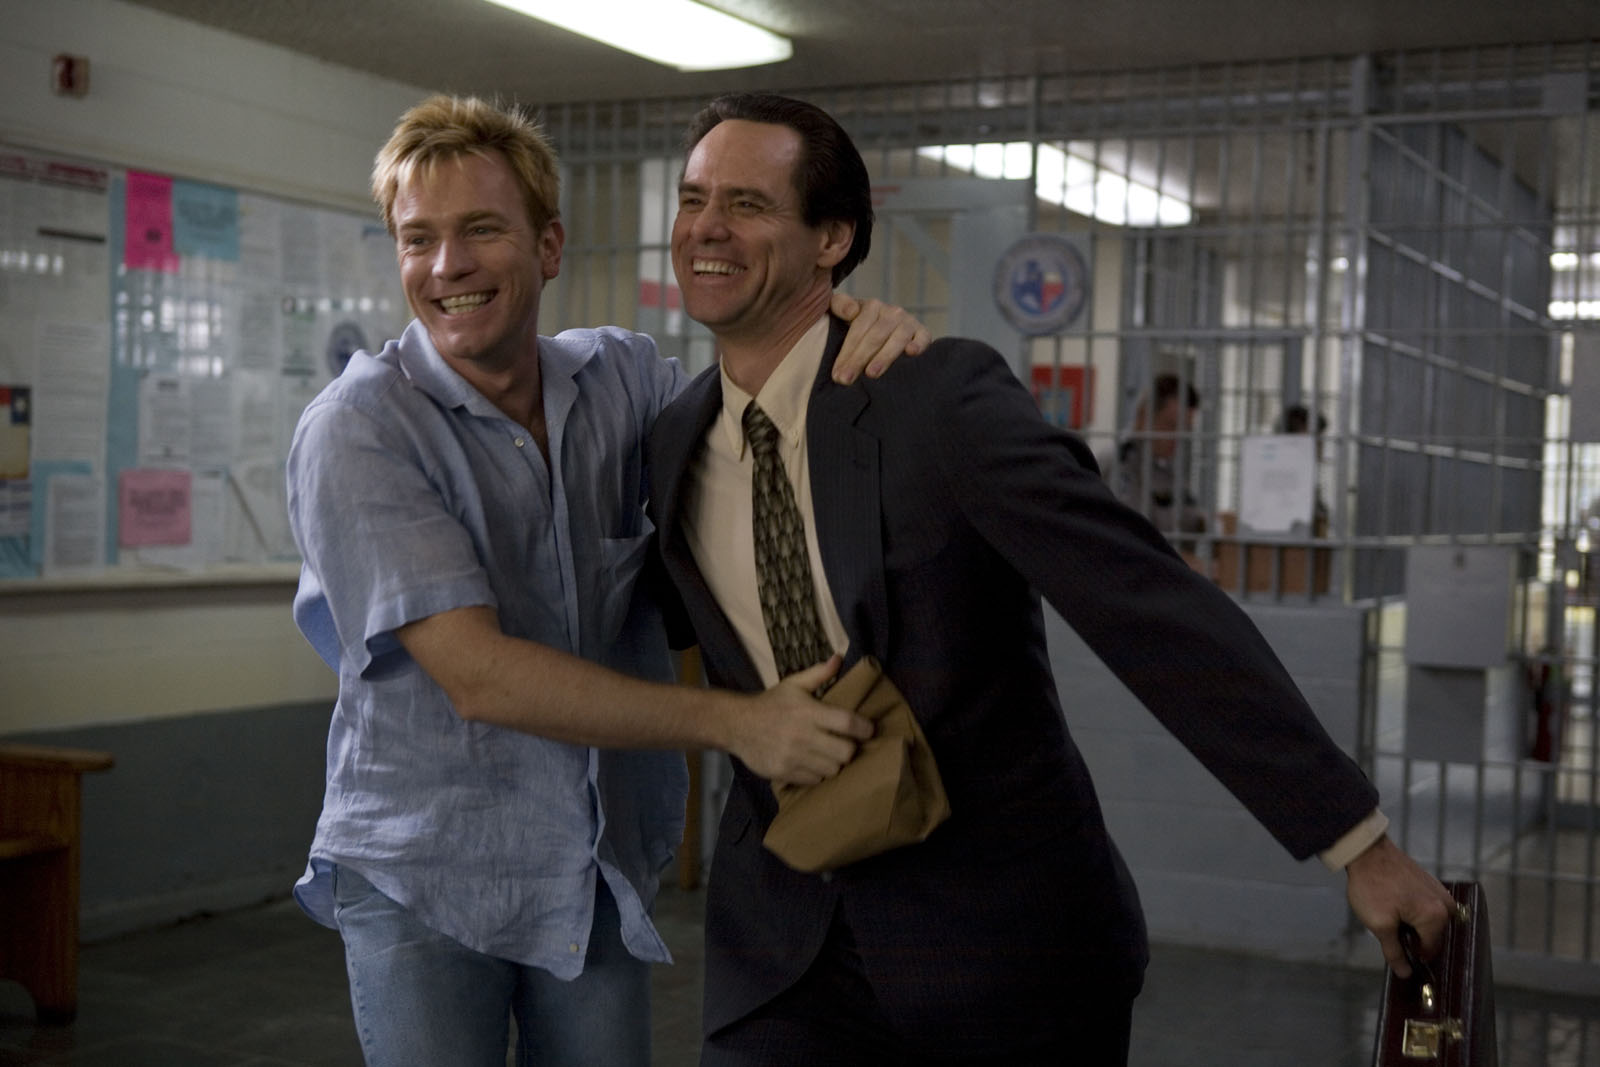 http://3.bp.blogspot.com/_EAViqbzwc_s/TPNC0yYilGI/AAAAAAAACmY/ZpaXgHFjyZA/s1600/i_love_you_phillip_morris_movie_image_jim_carrey_and_ewan_mcgregor_l.jpg